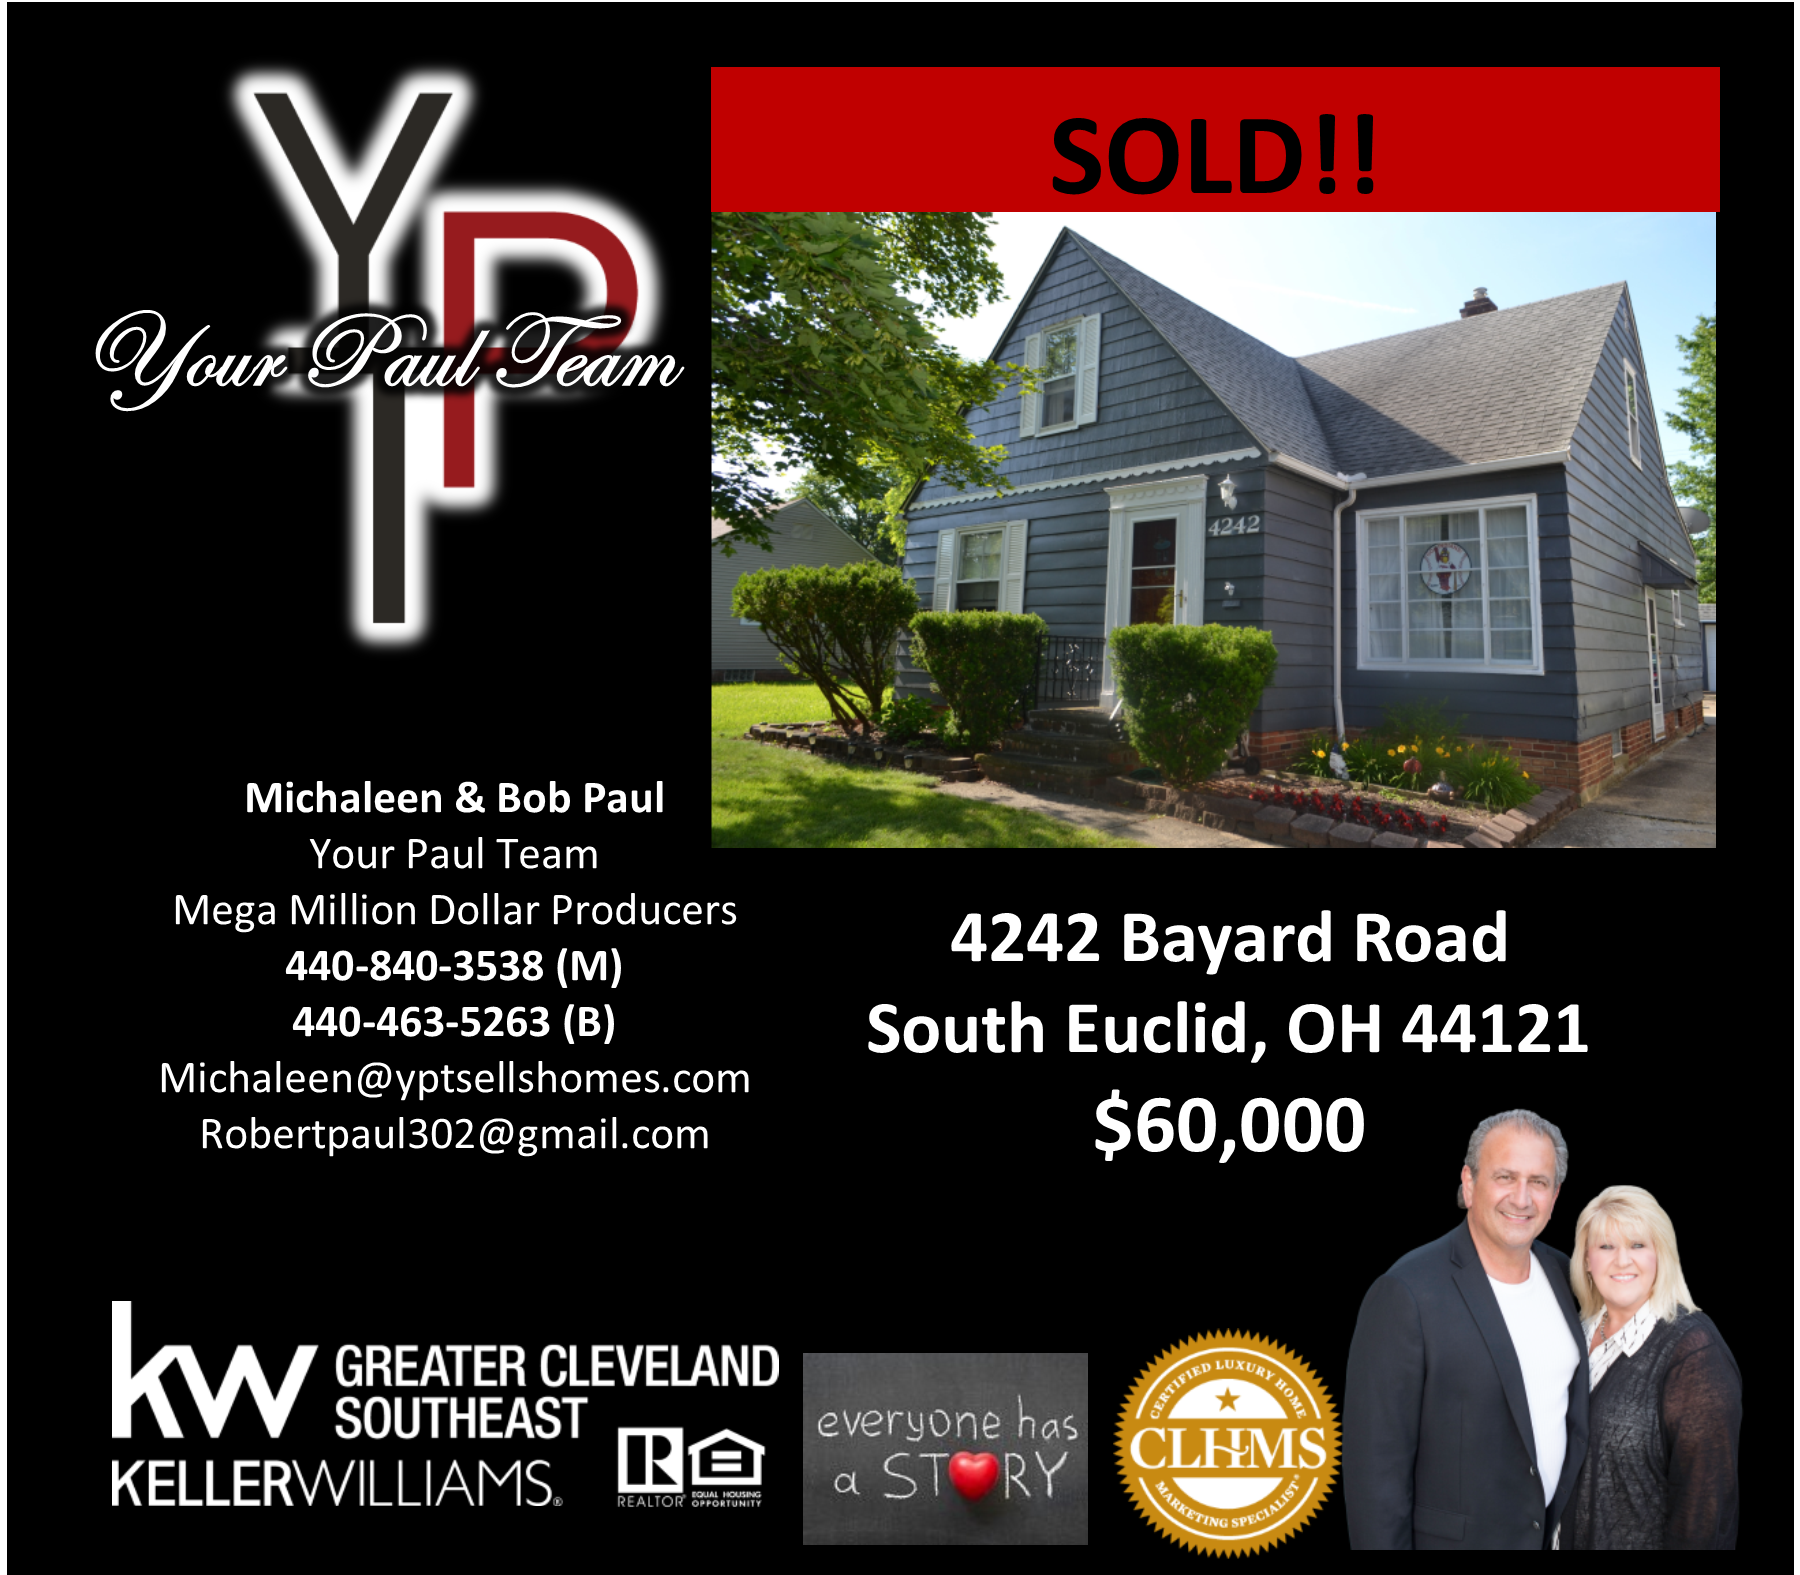 Another Listing SOLD by Your Paul Team! 4242 Bayard Road, South Euclid